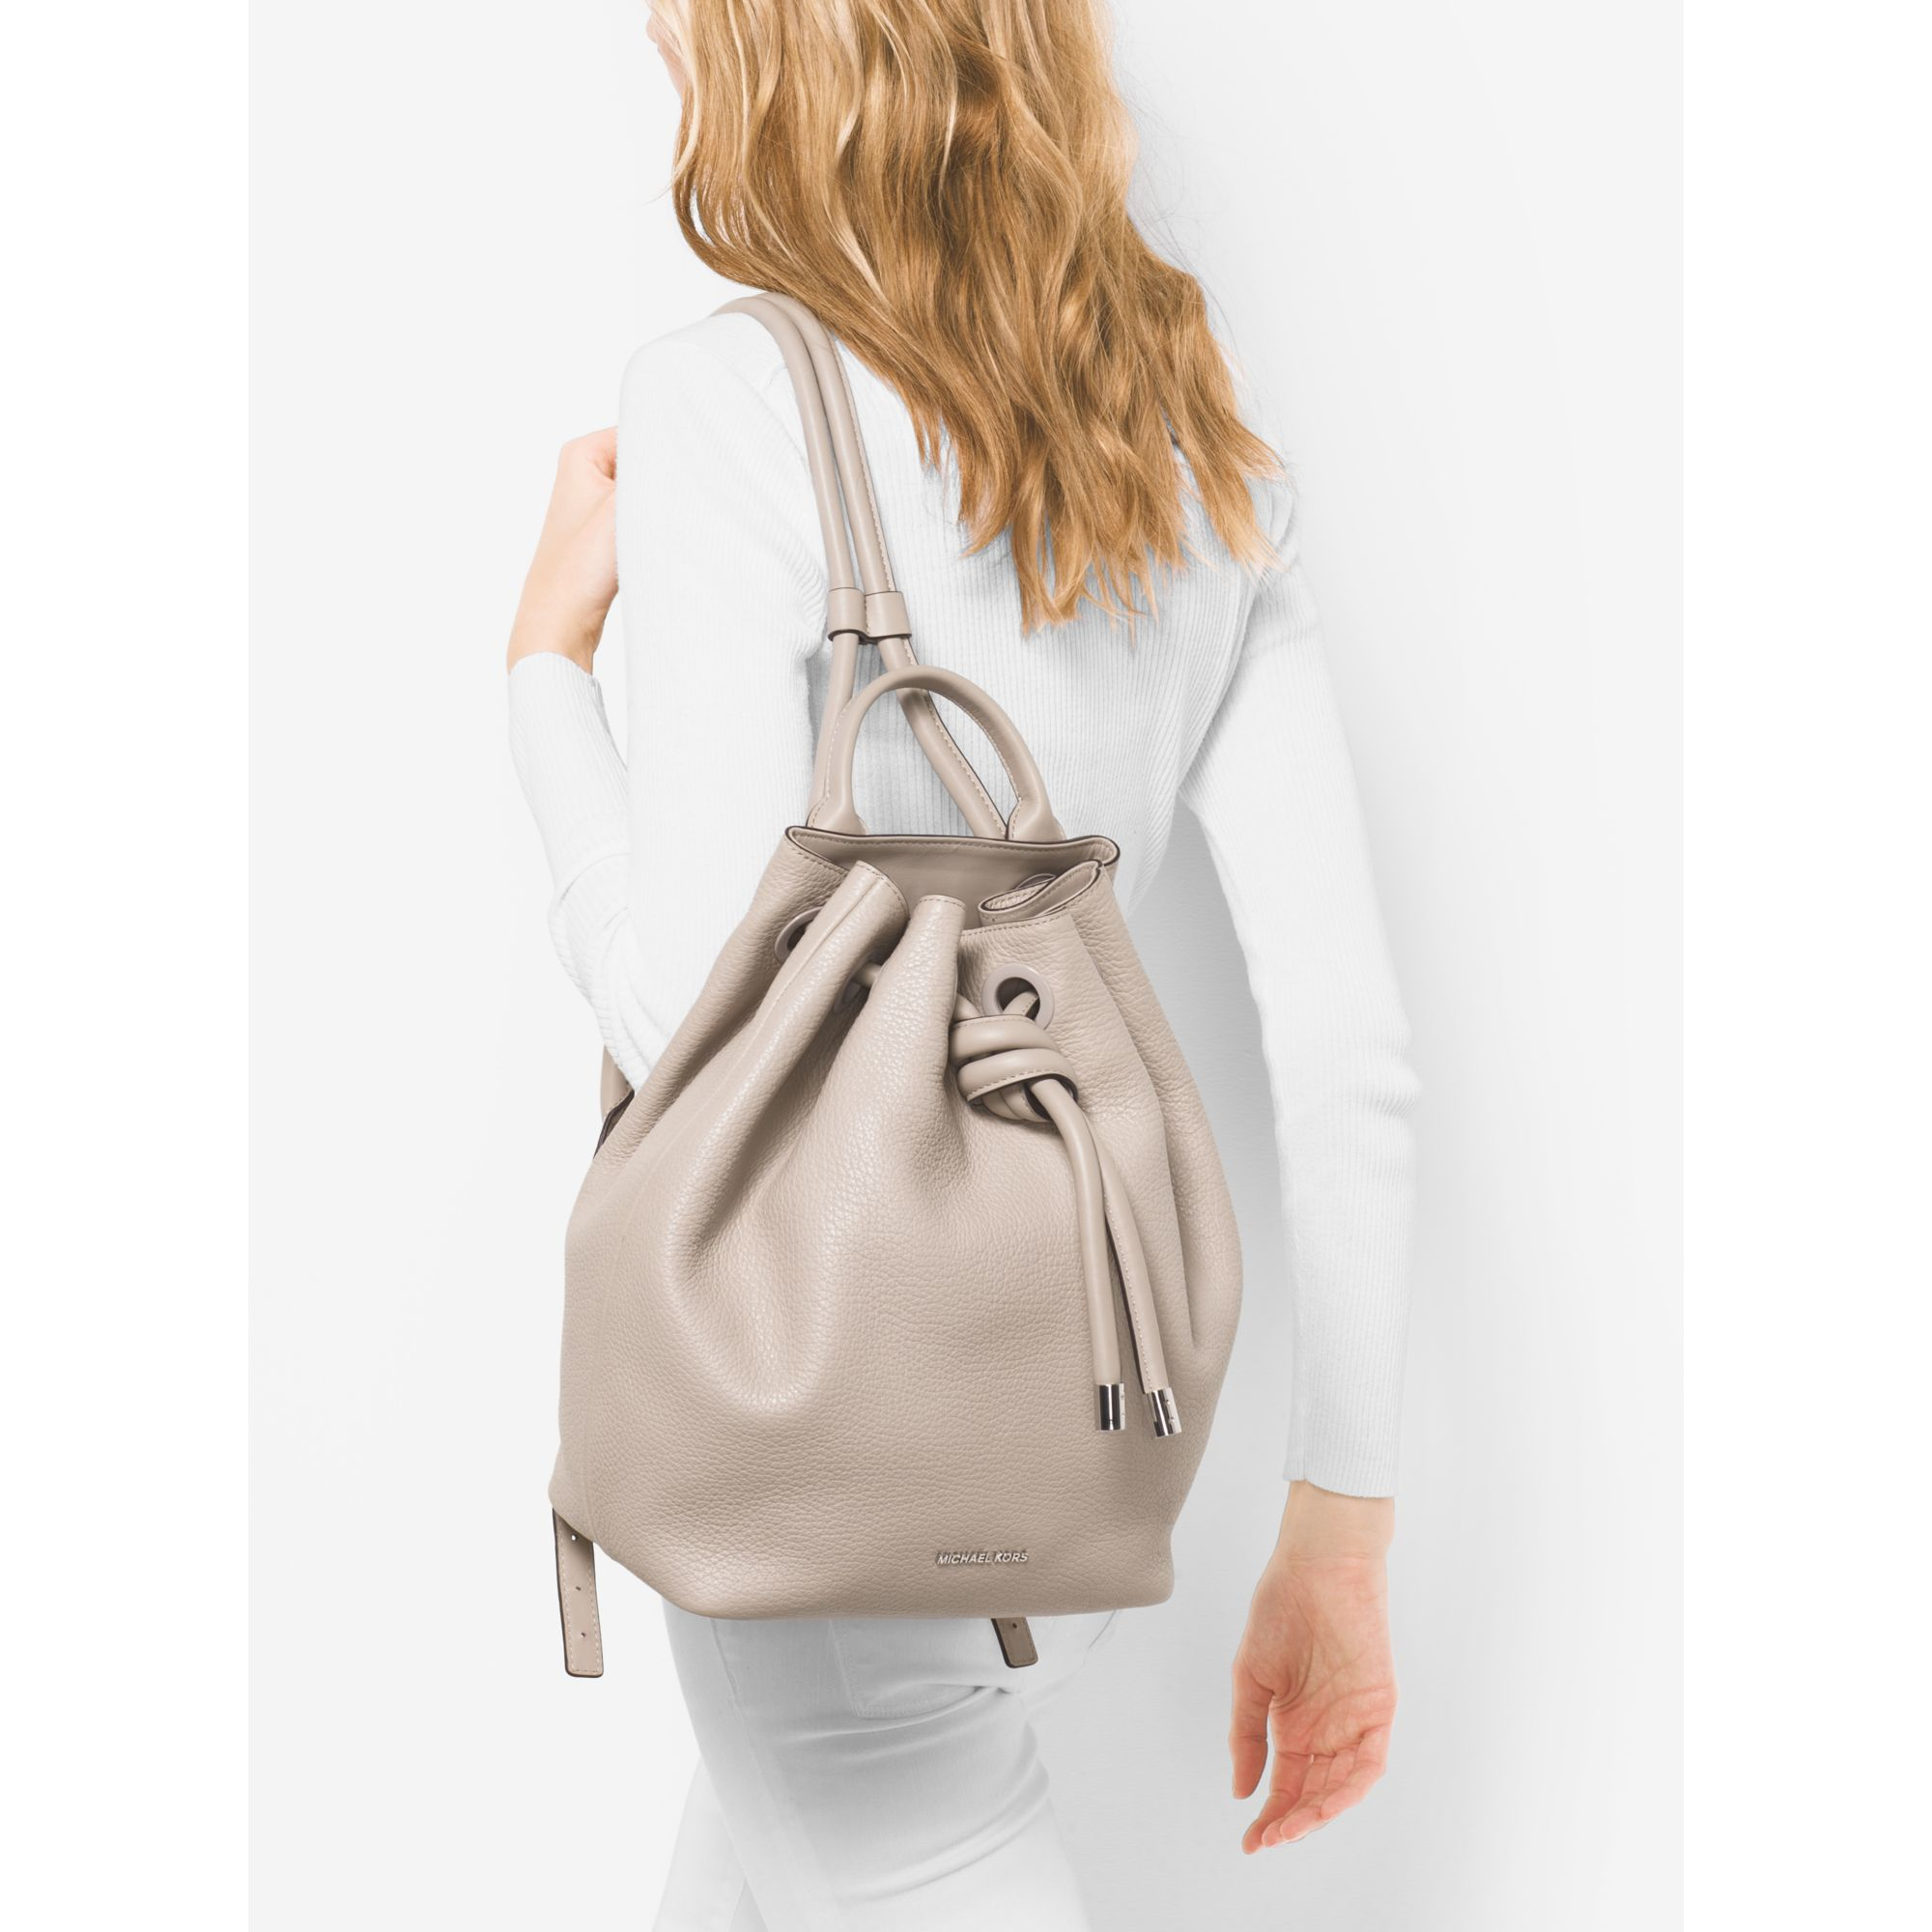 e353165375f3 ... discount lyst michael kors dalia large leather backpack in gray 82f34  5b4a2